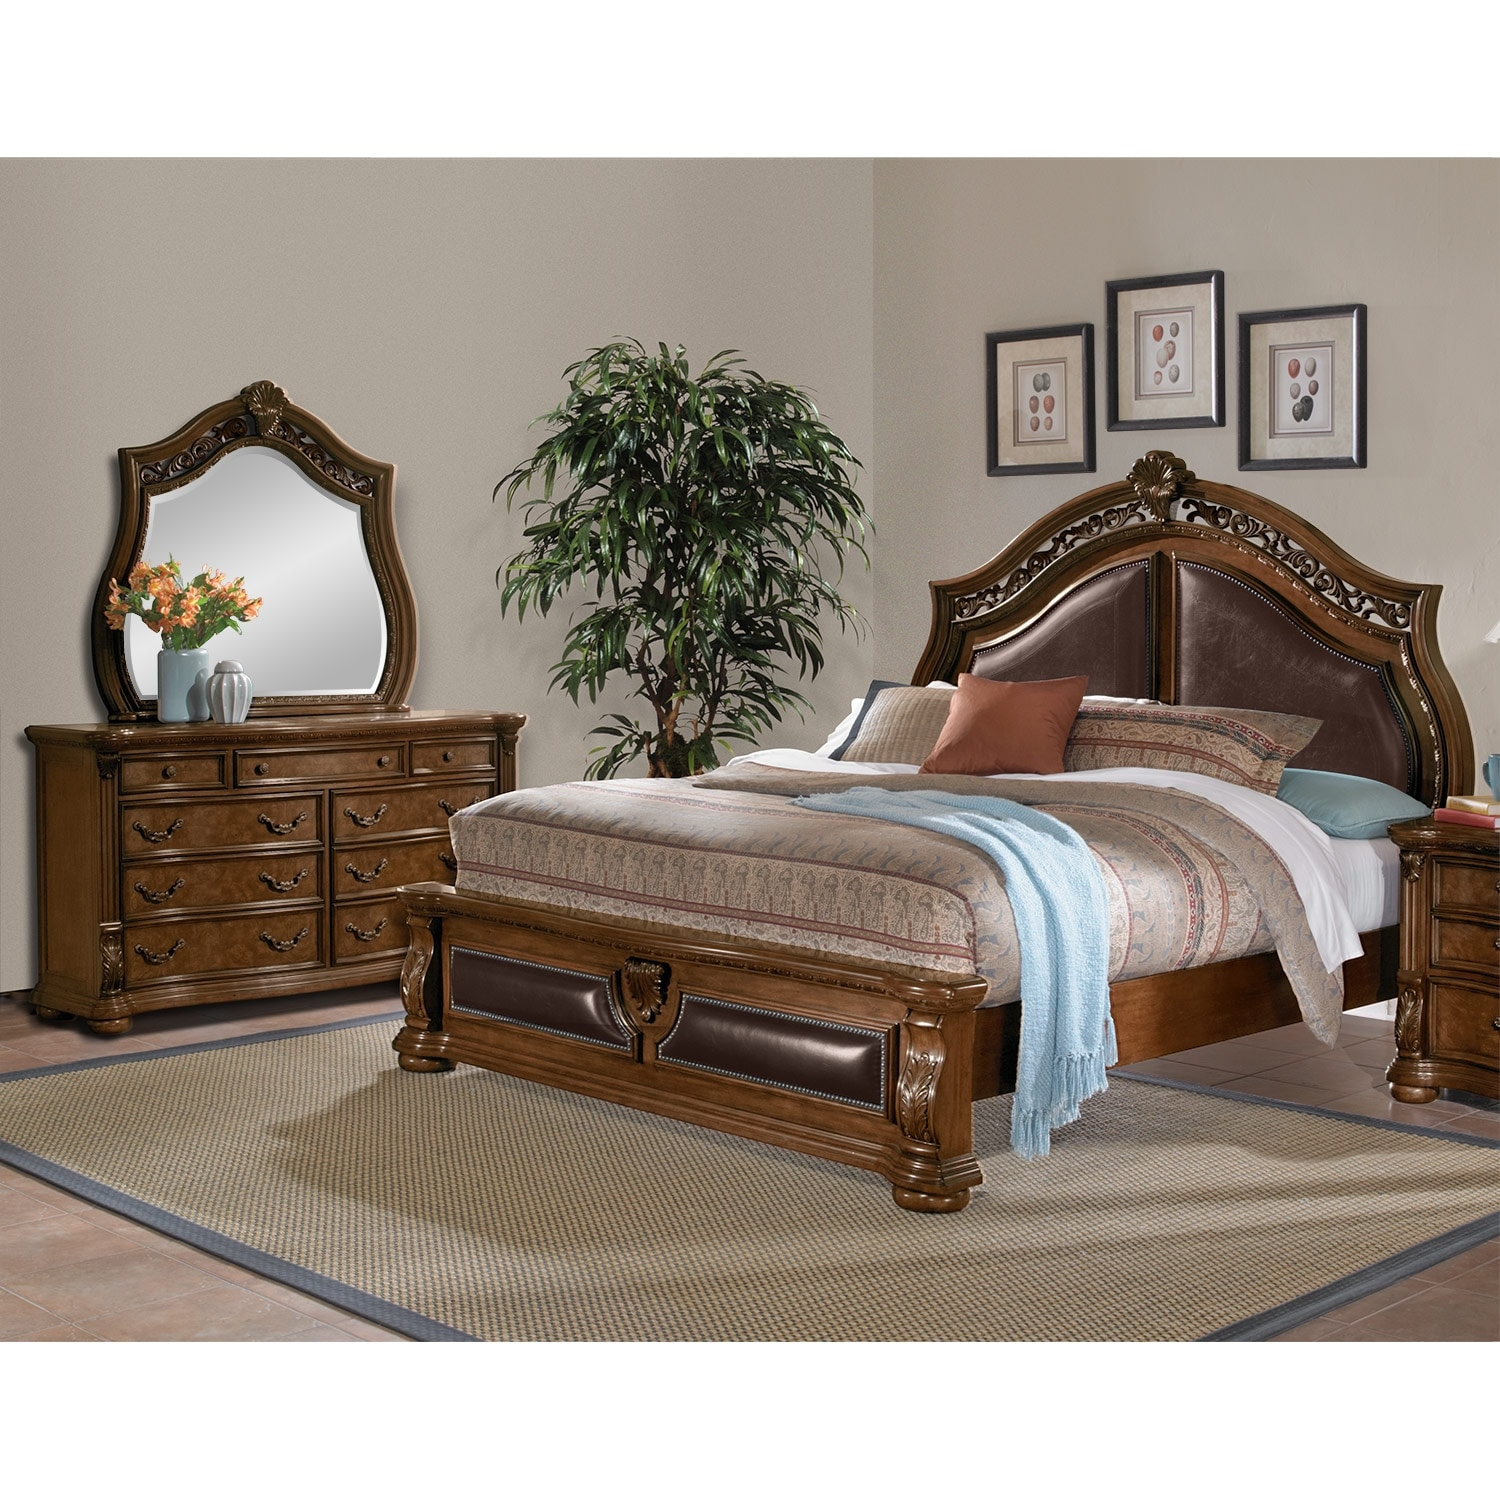 Amazing Morocco 5 Piece Queen Upholstered Bedroom Set   Pecan